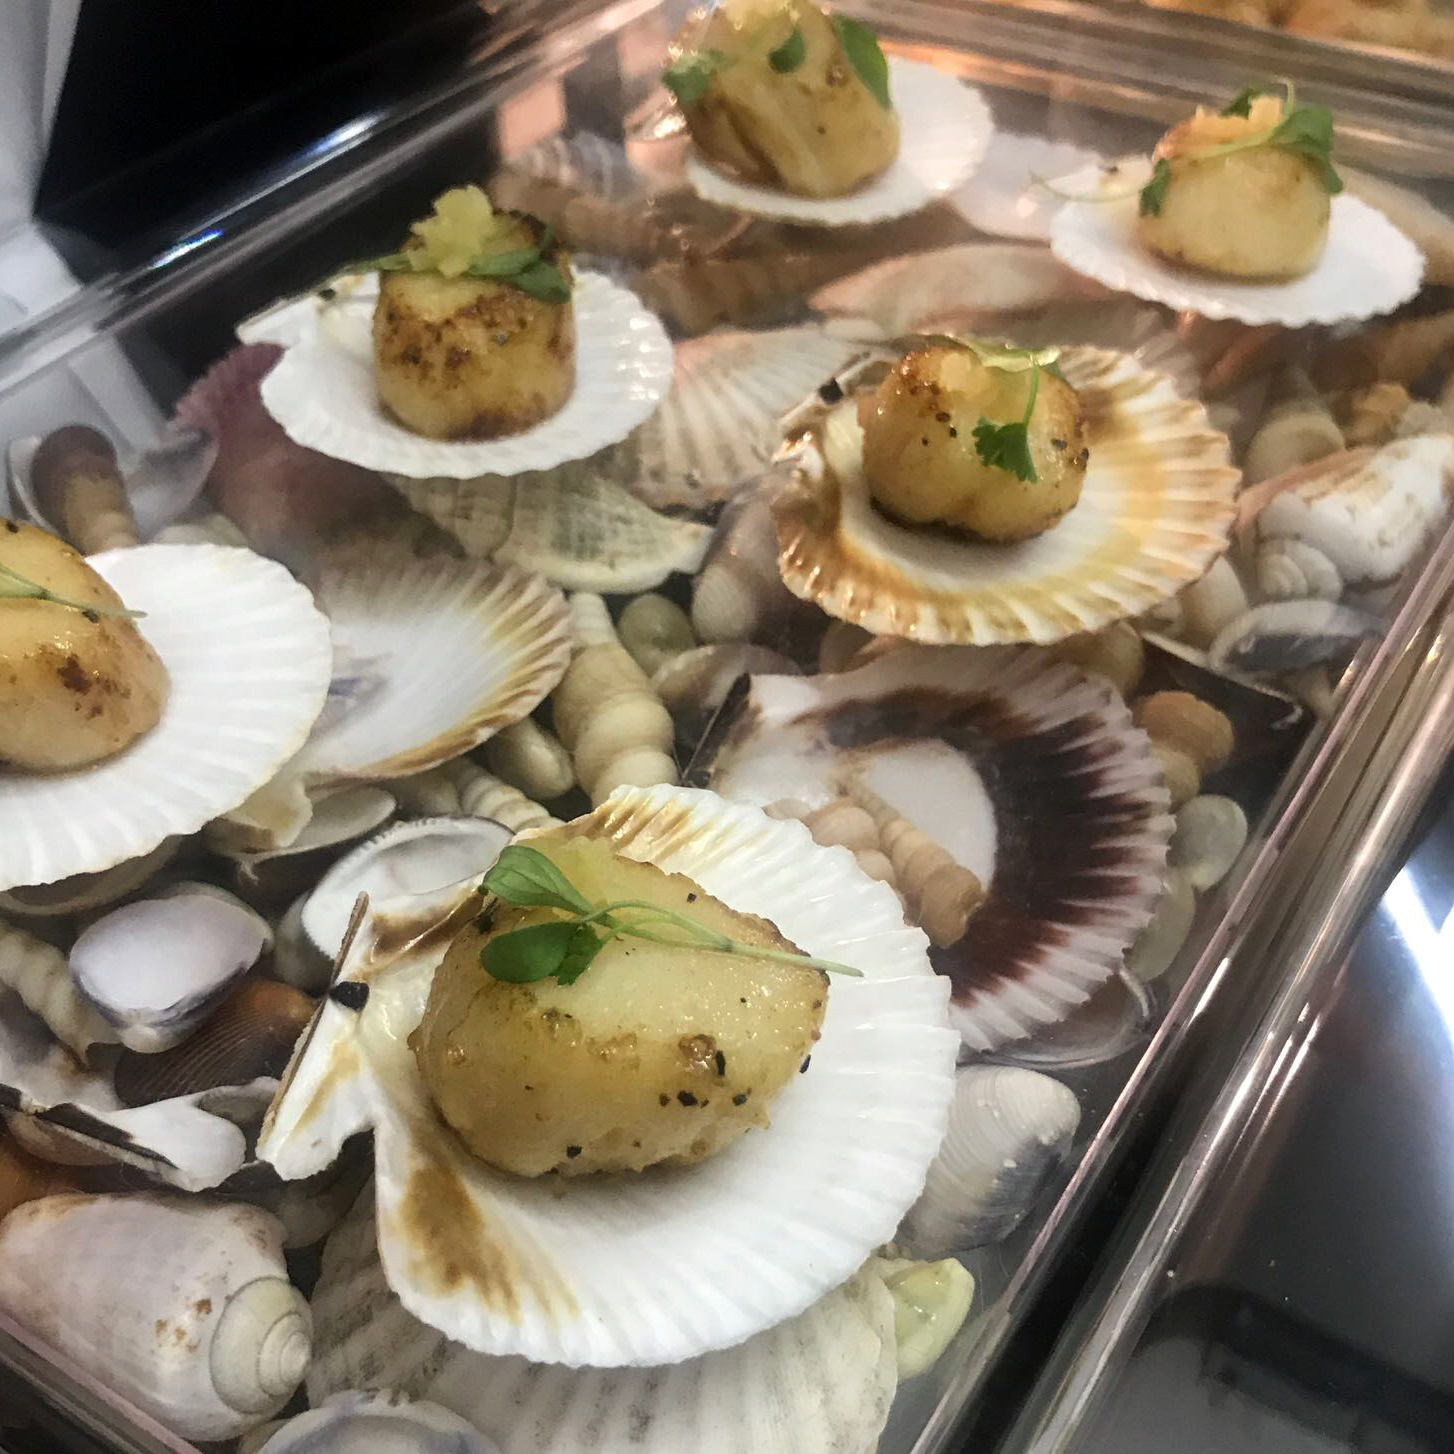 Dine Events Catering | Seared Scallops with pickled ginger, coriander